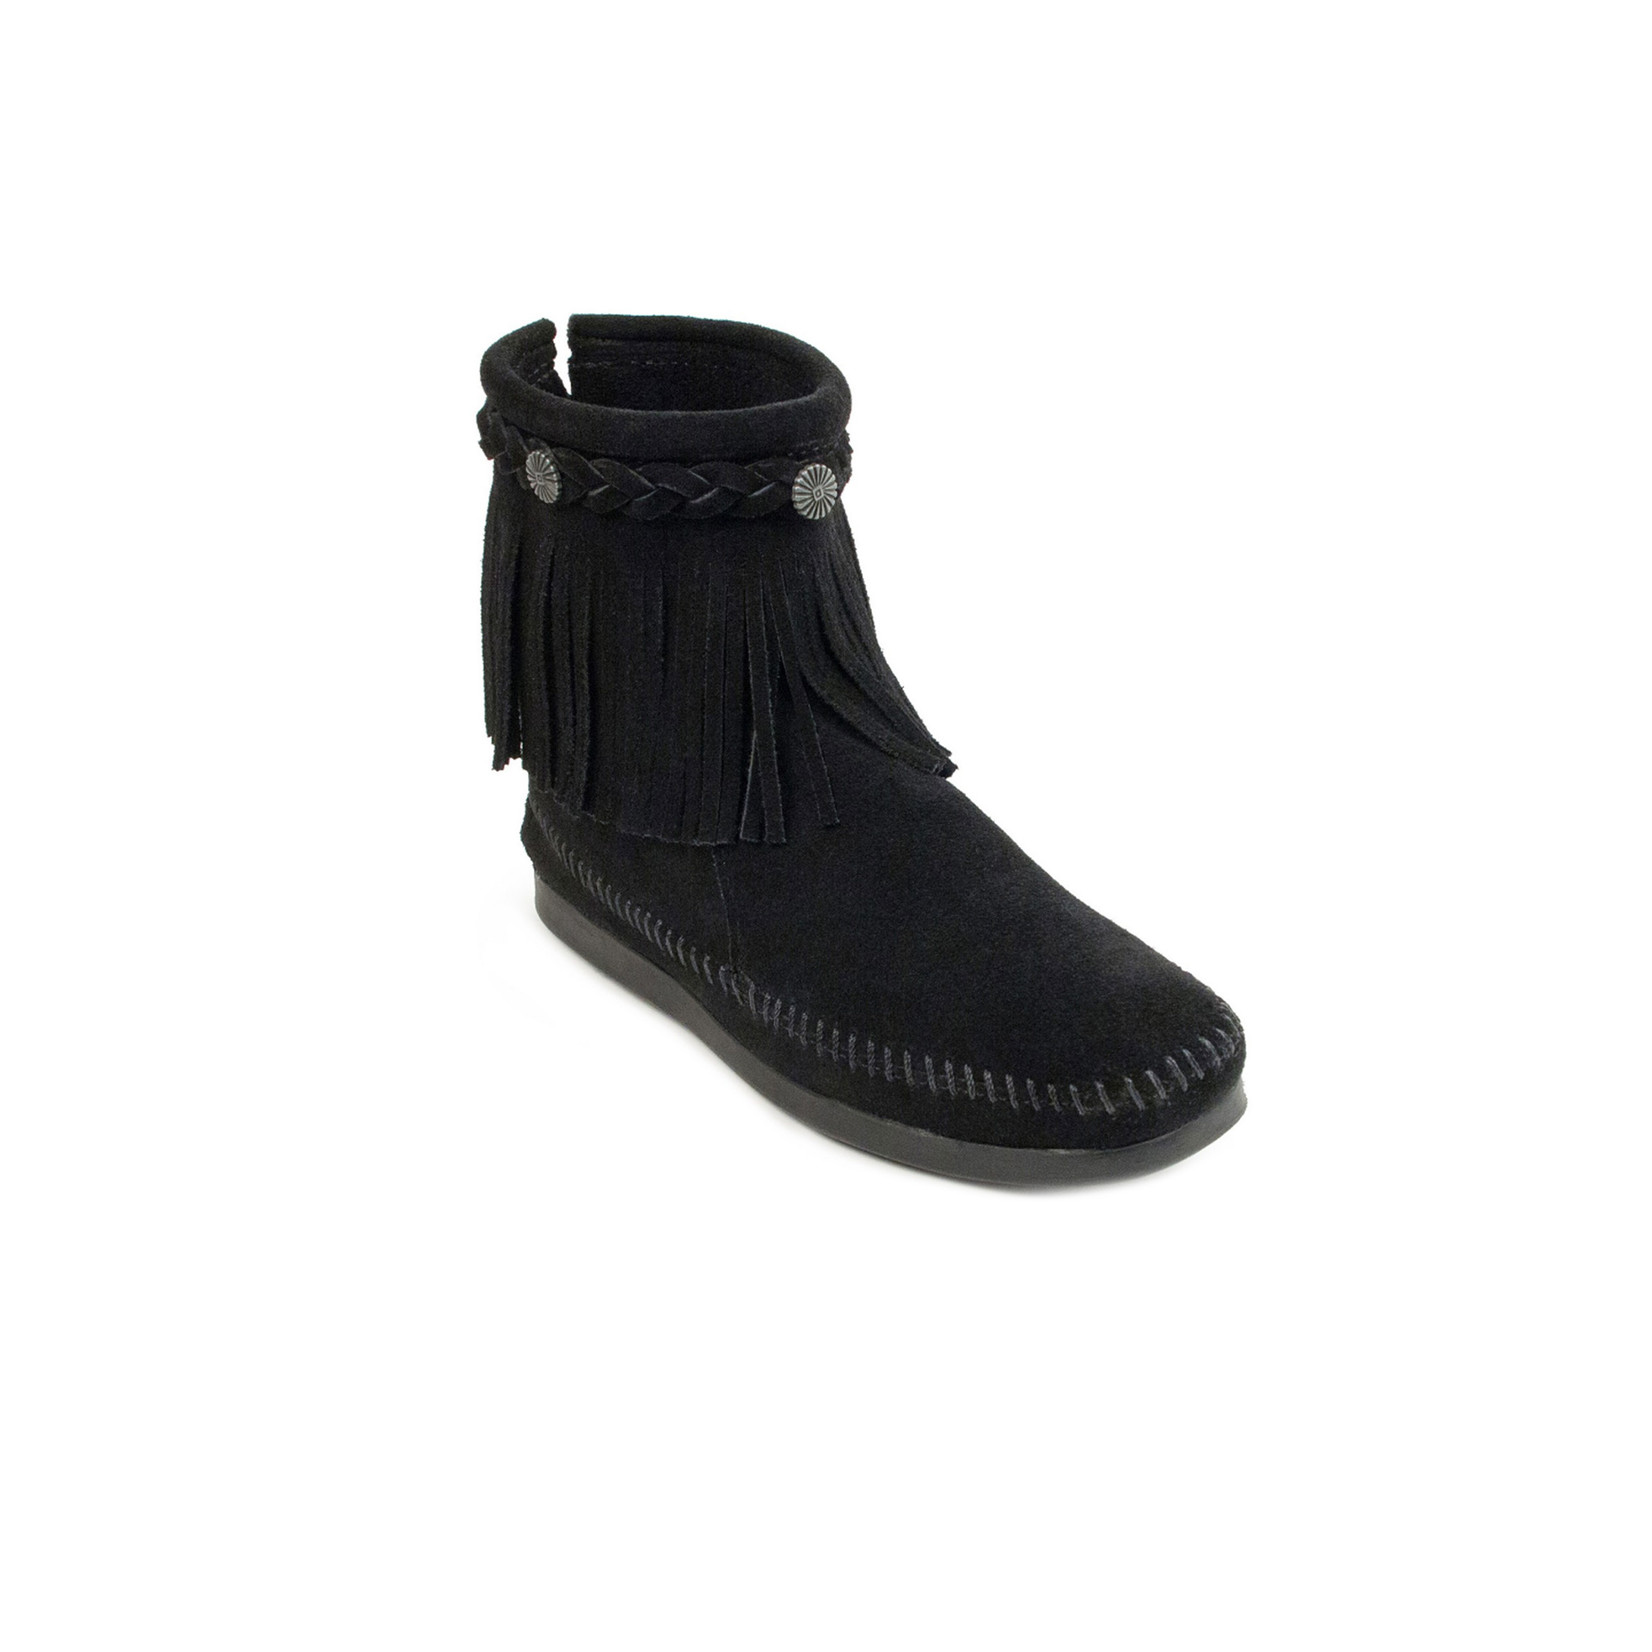 Minnetonka Women's Minnetonka High Top Back zip Boot Black 299